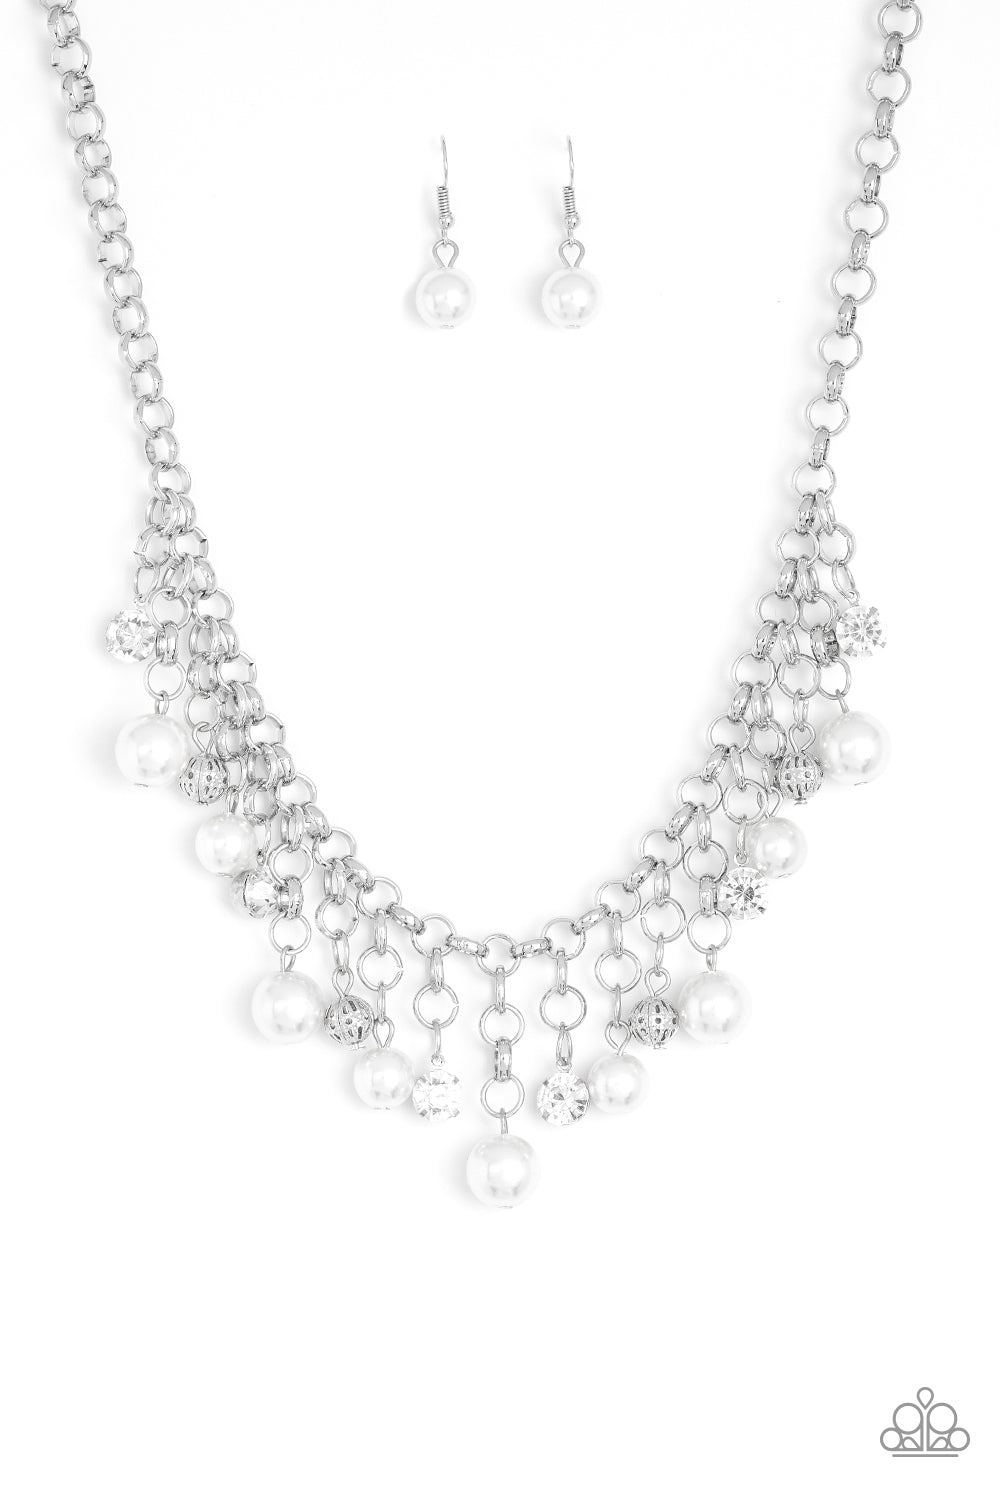 Paparazzi HEIR-headed - White Faux Pearl Rhinestone Necklace & Earrings Set